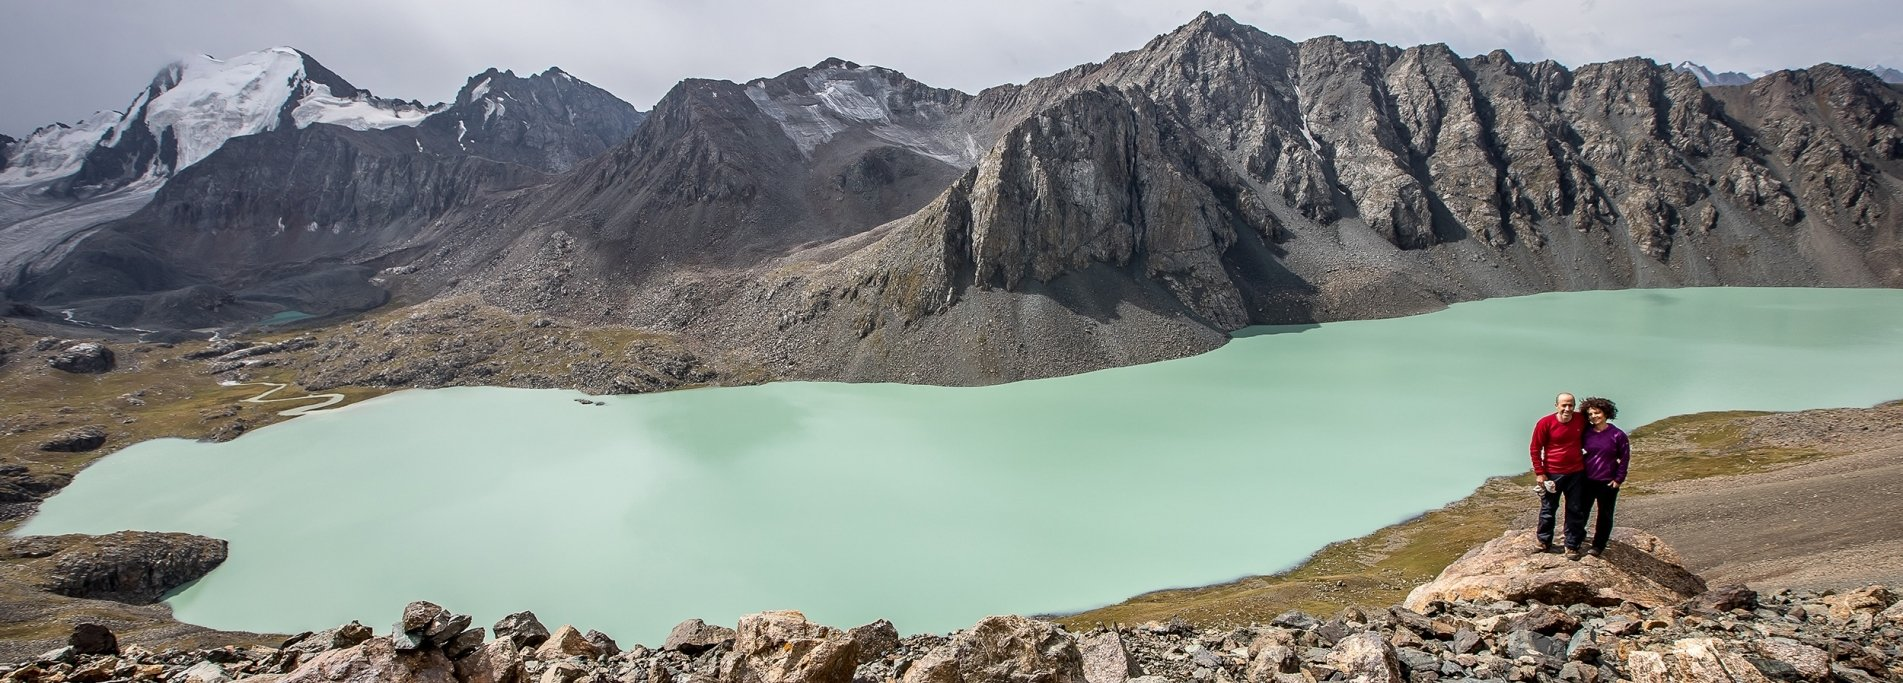 Trekking in Terskei Ala-Too Mountains - Across the Northeastern part of Kyrgyzstan to Lake Ala-Kol